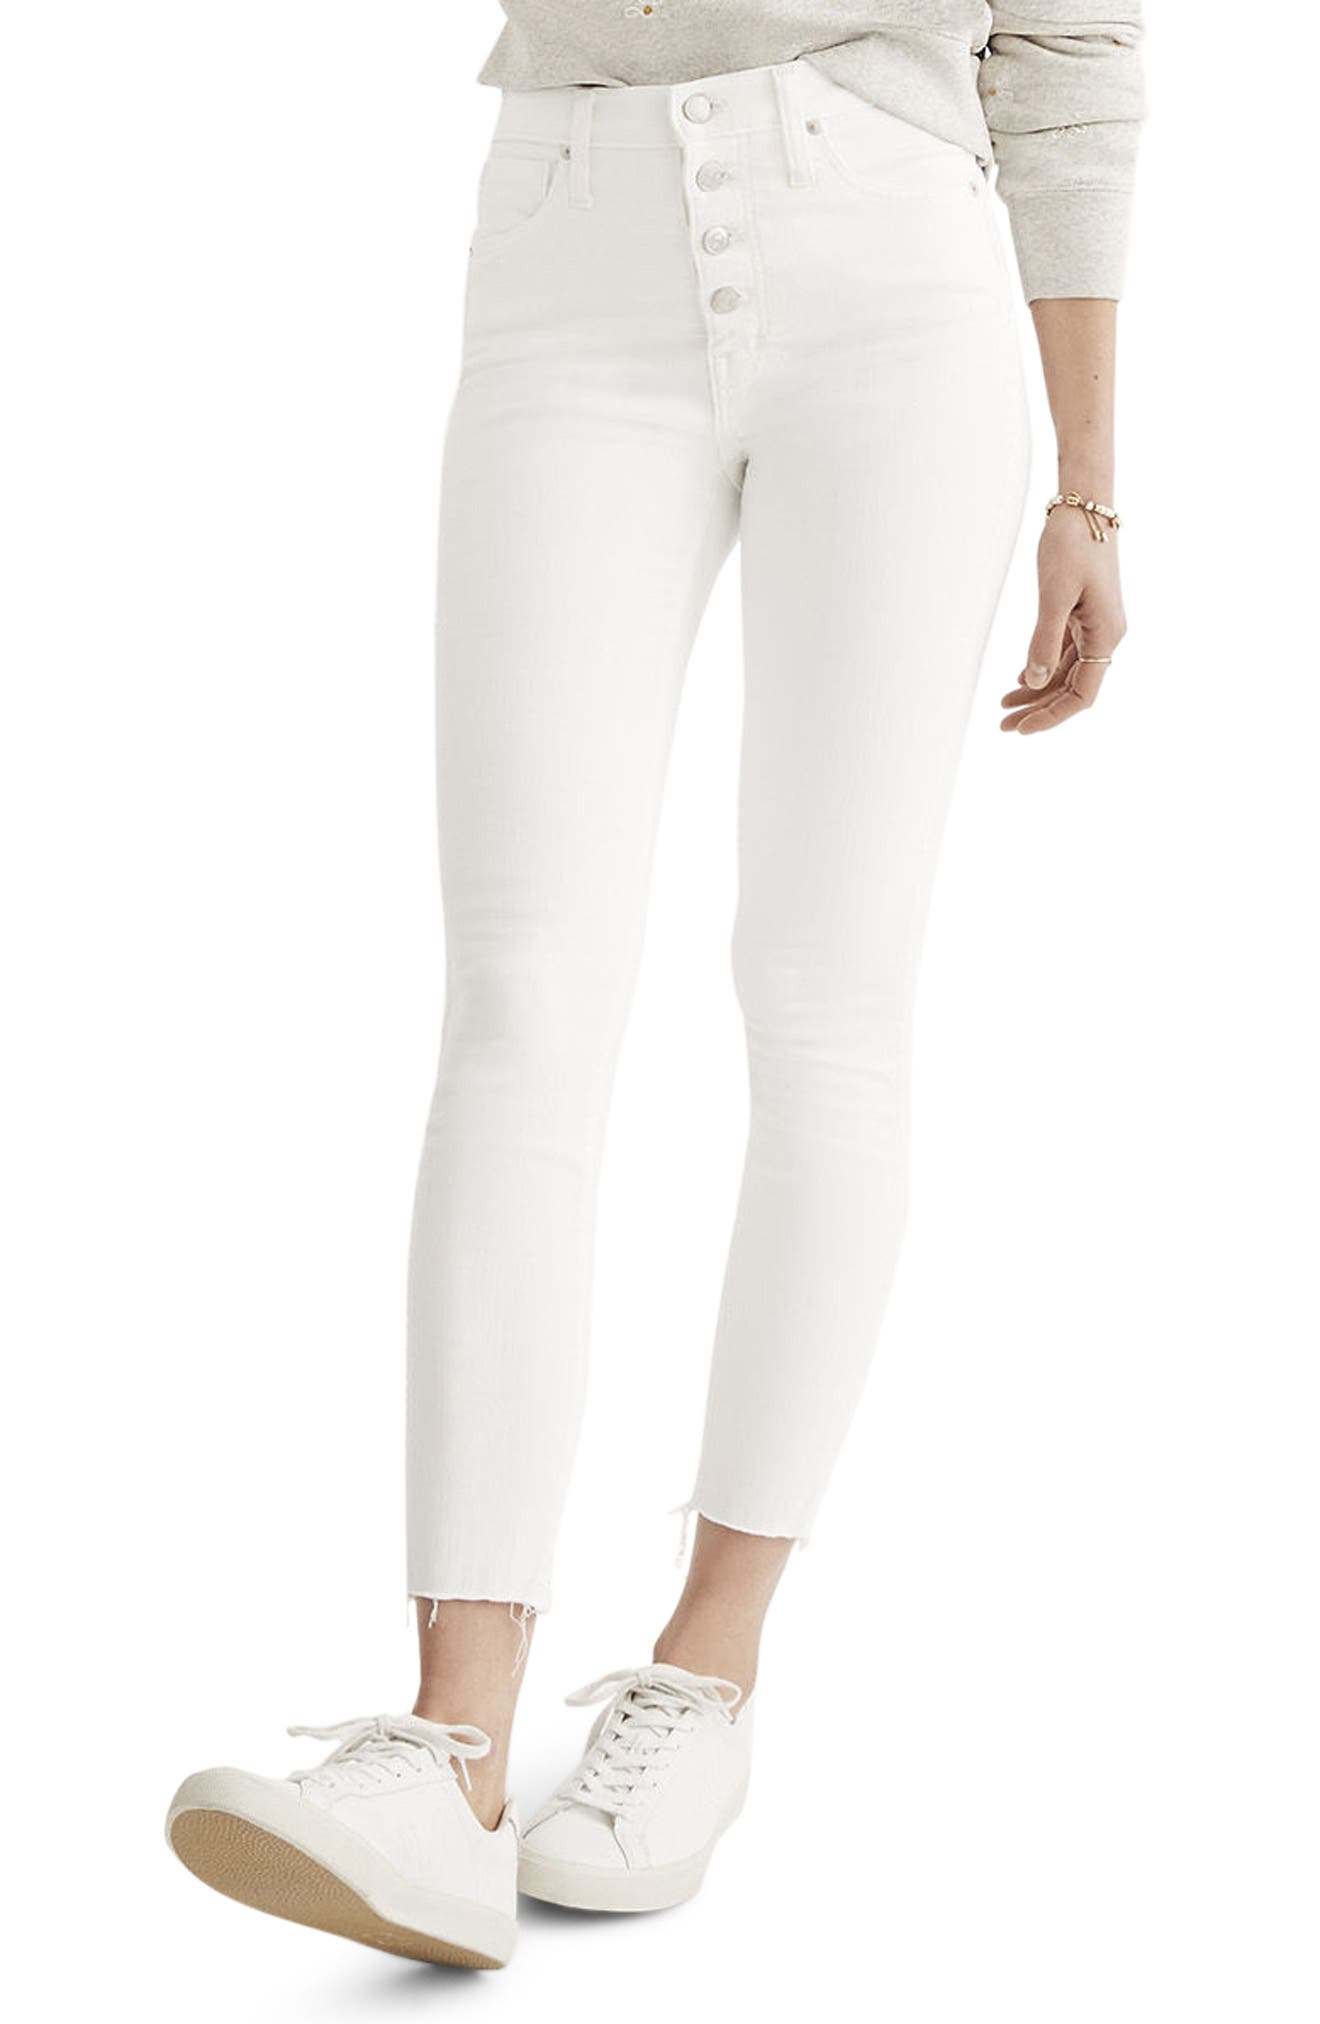 10-Inch Button High Waist Crop Skinny Jeans,                         Main,                         color, PURE WHITE